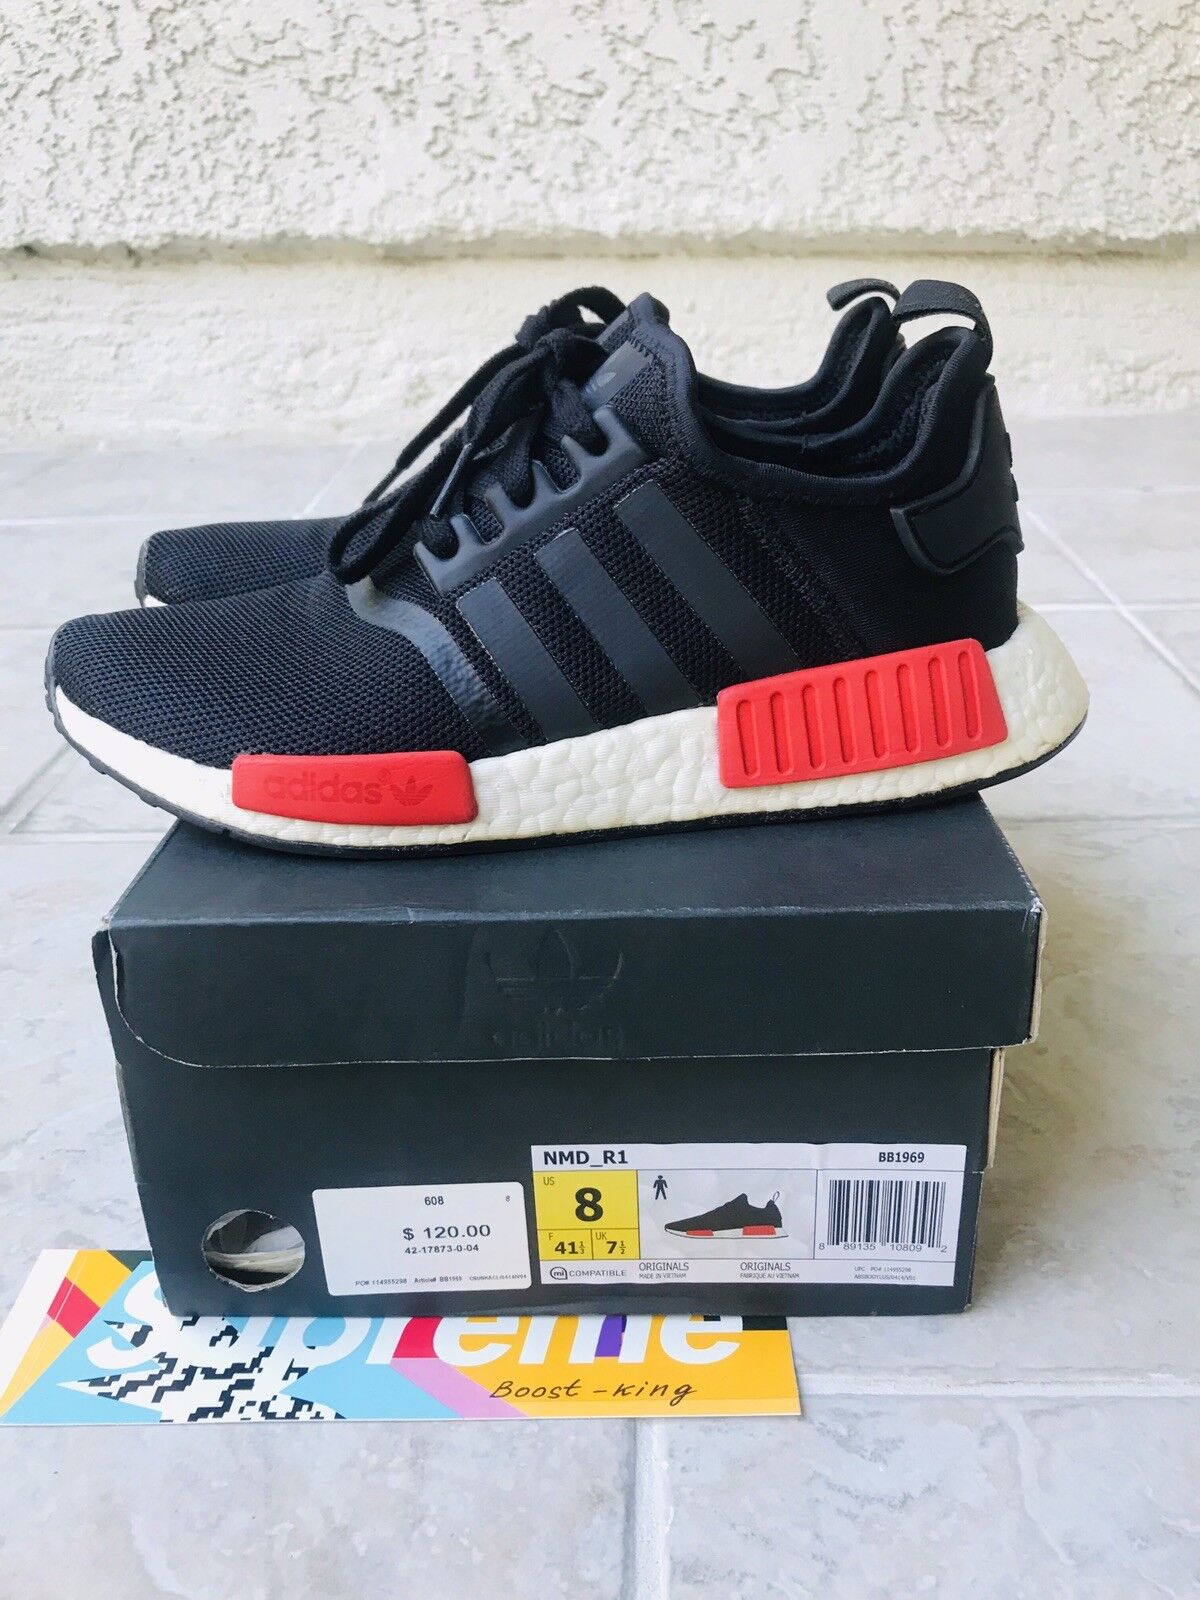 Adidas NMD R1 Bred Black Red Men's size 8